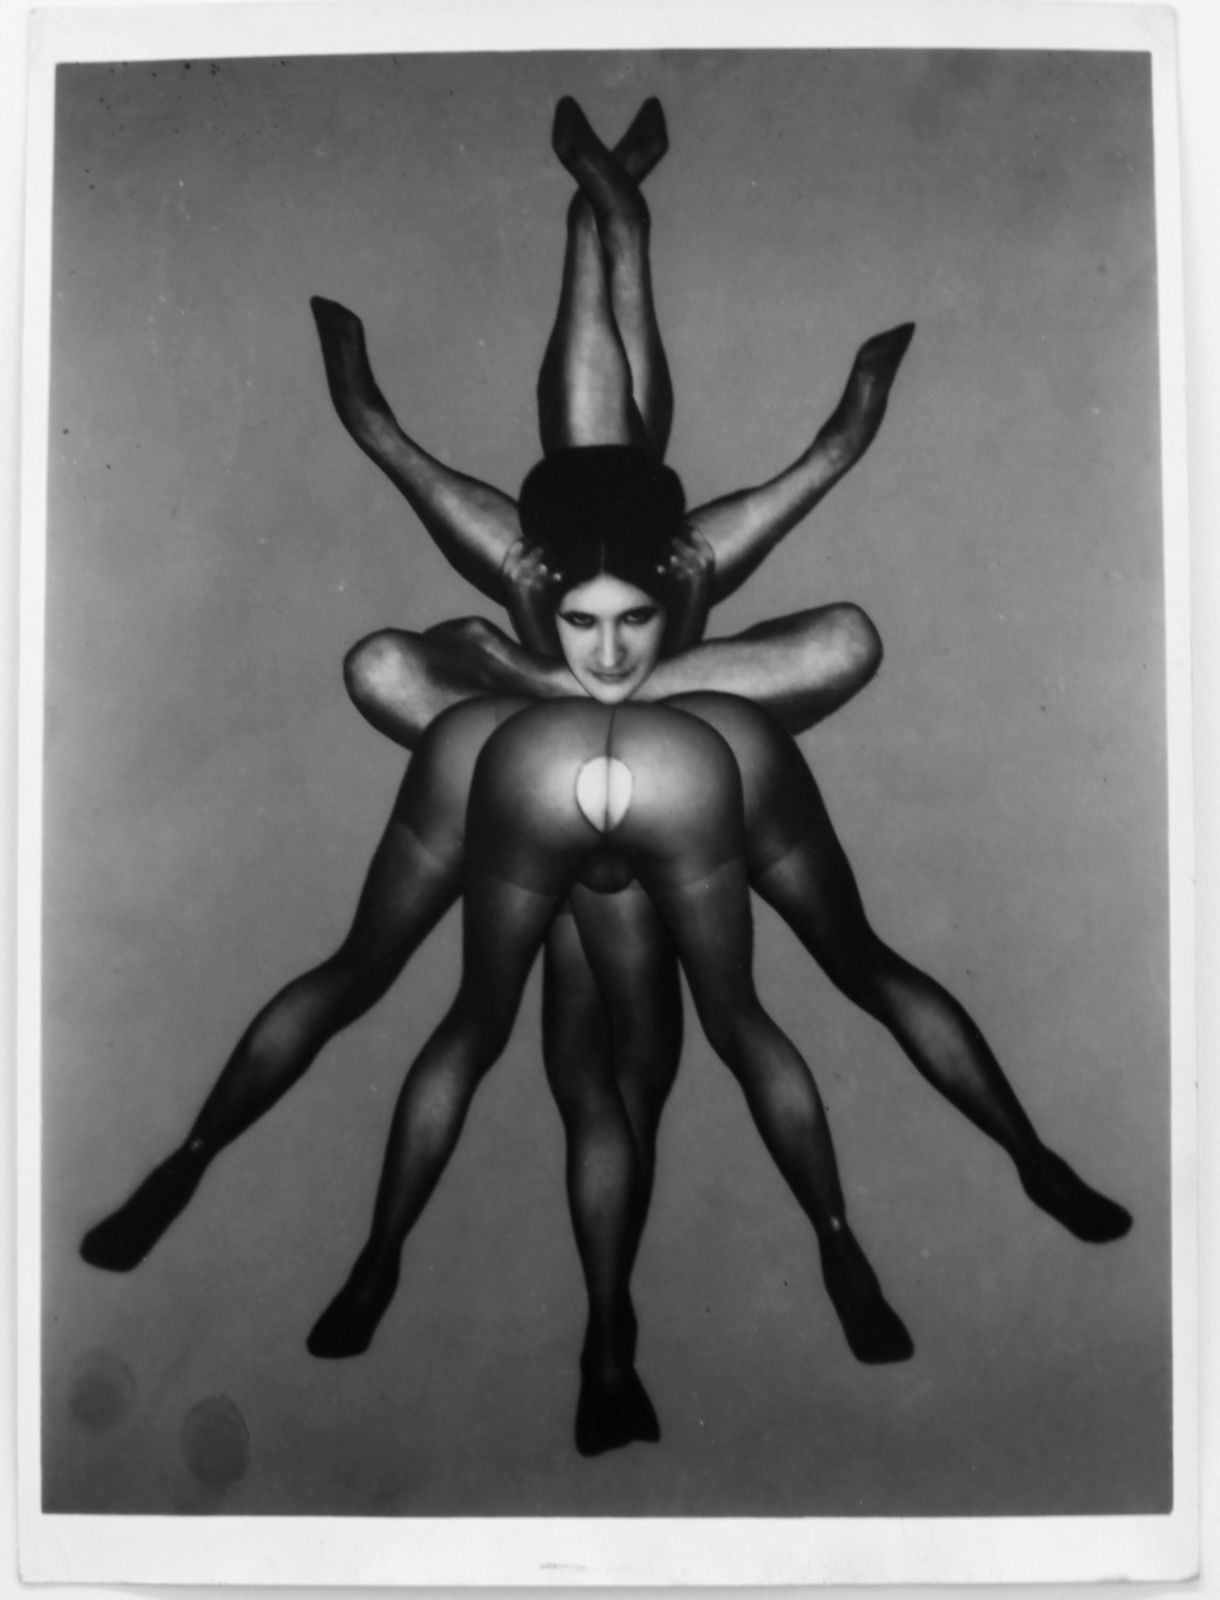 """Méditation Vampirique"", 1967 de Pierre MOLINIER - Courtesy Galerie Loevenbruck  © Photo Éric Simon"